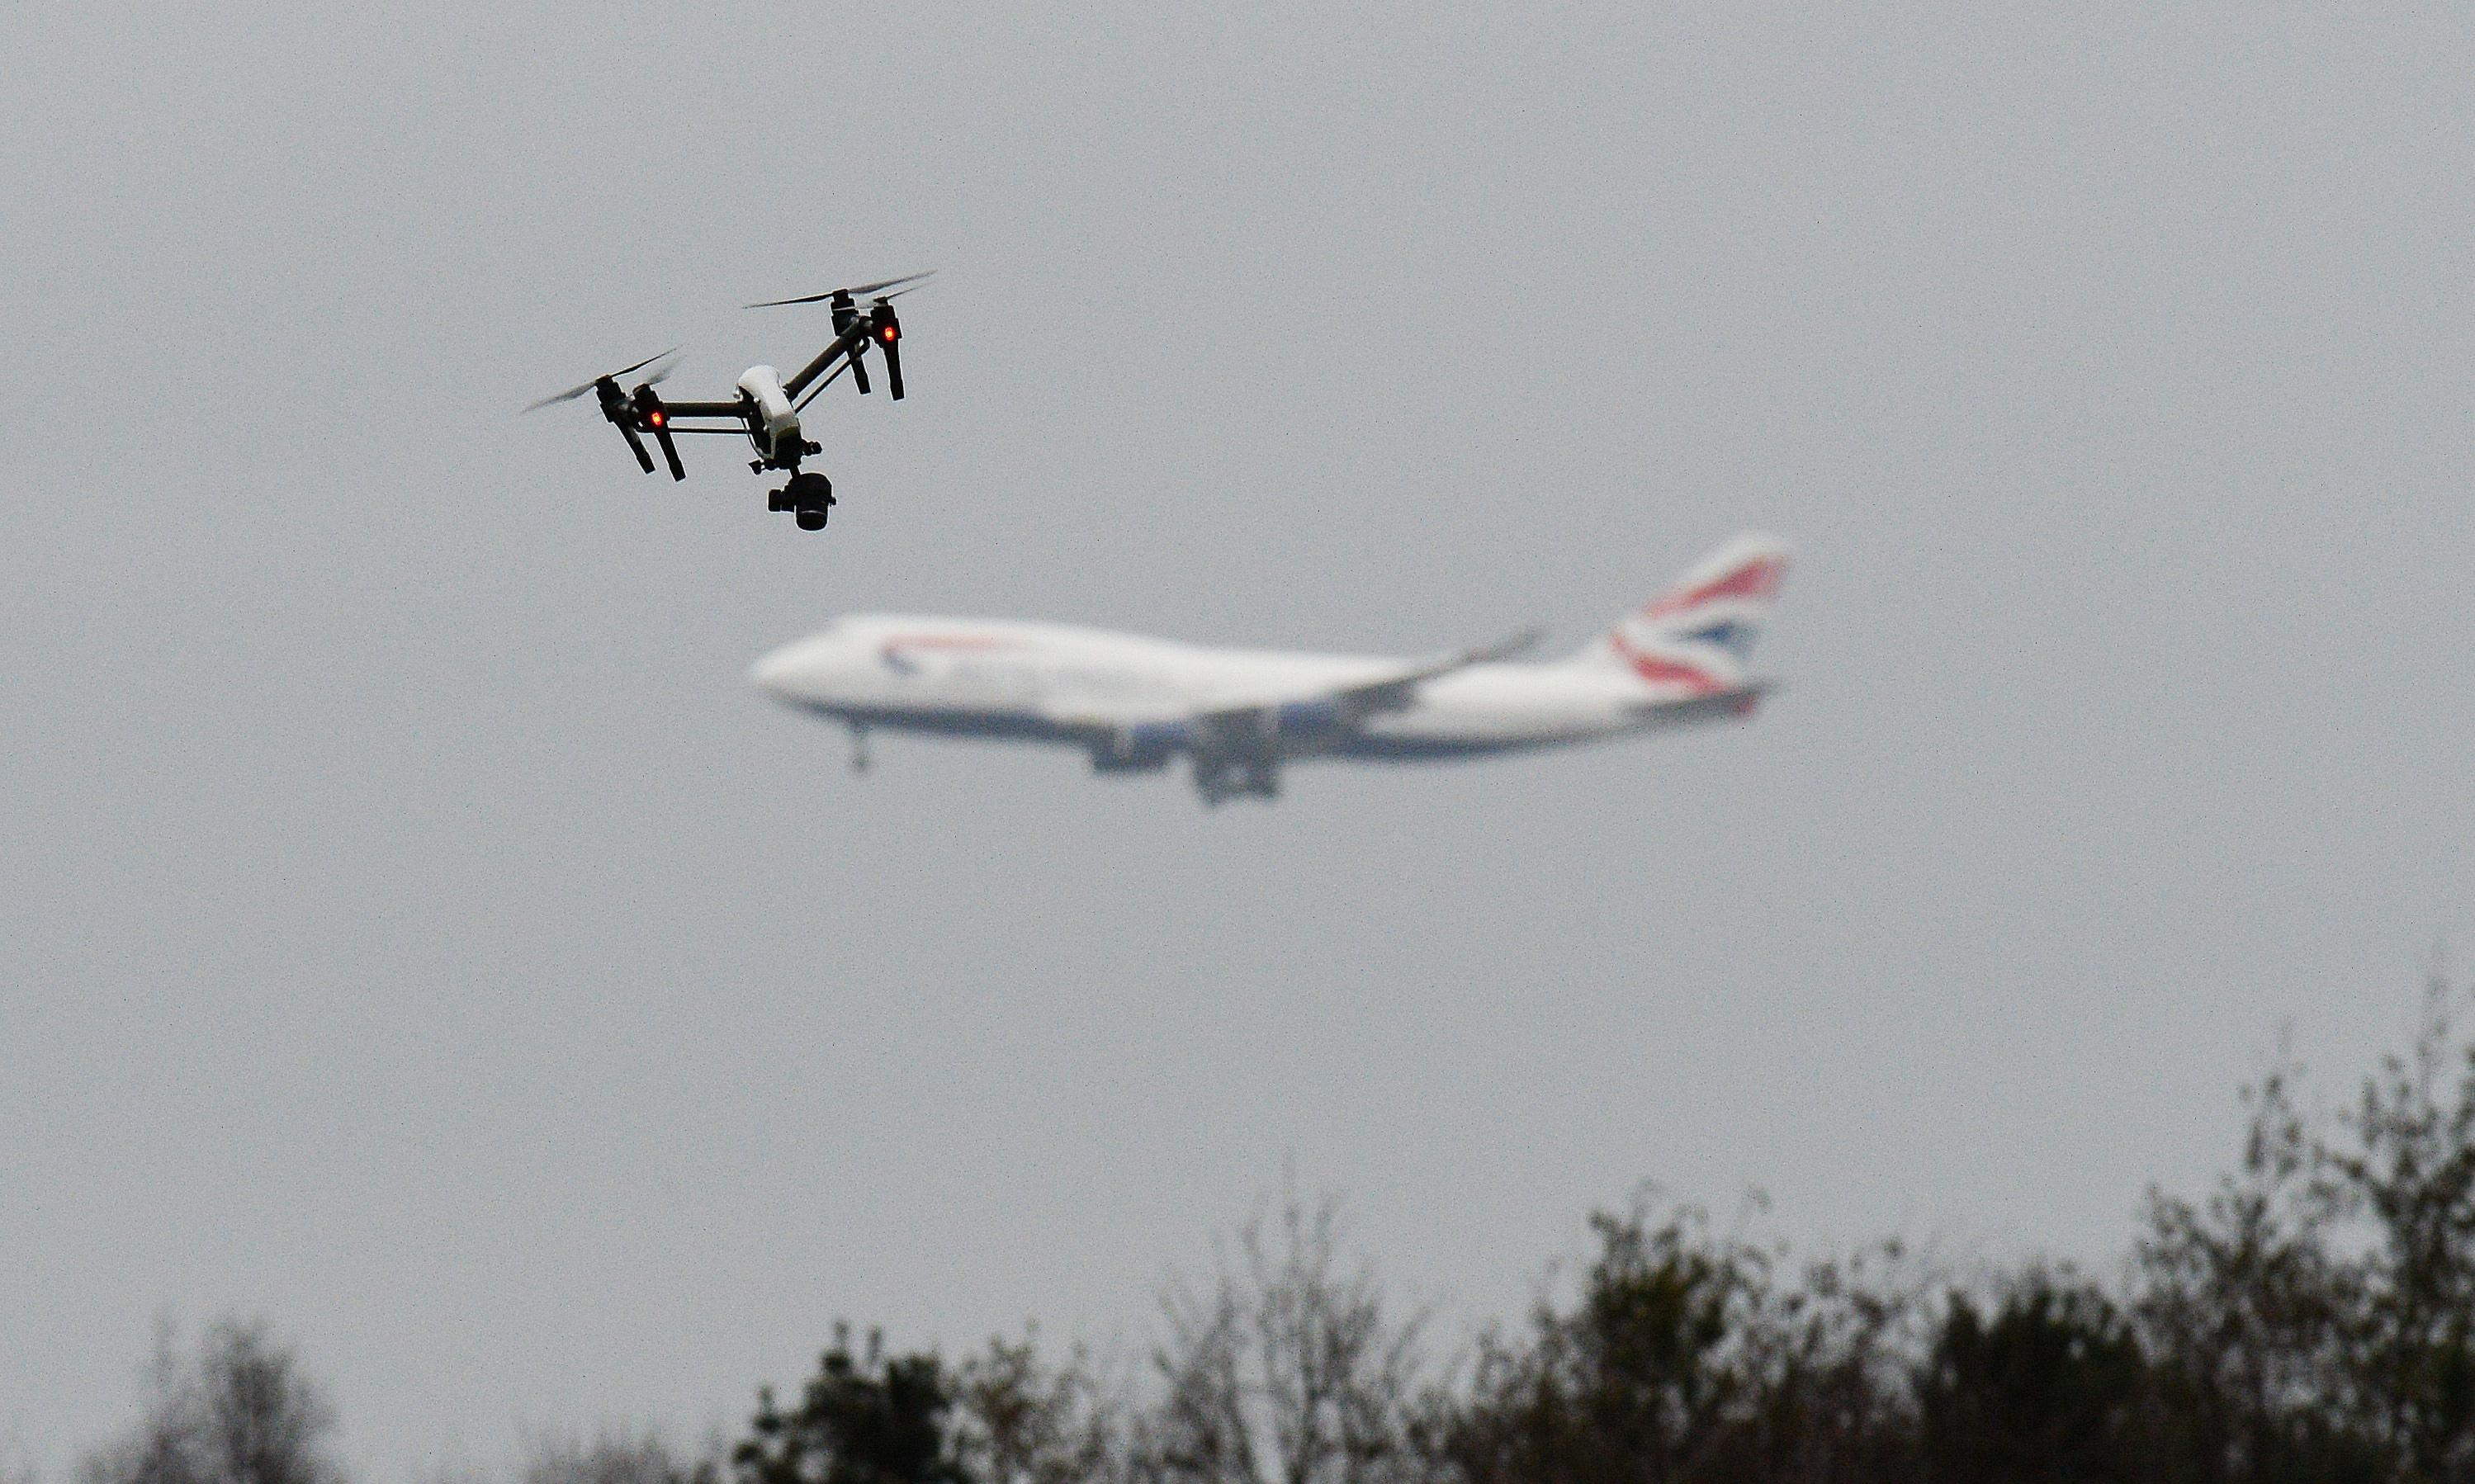 Flights delayed as drones fly near East Midlands airport